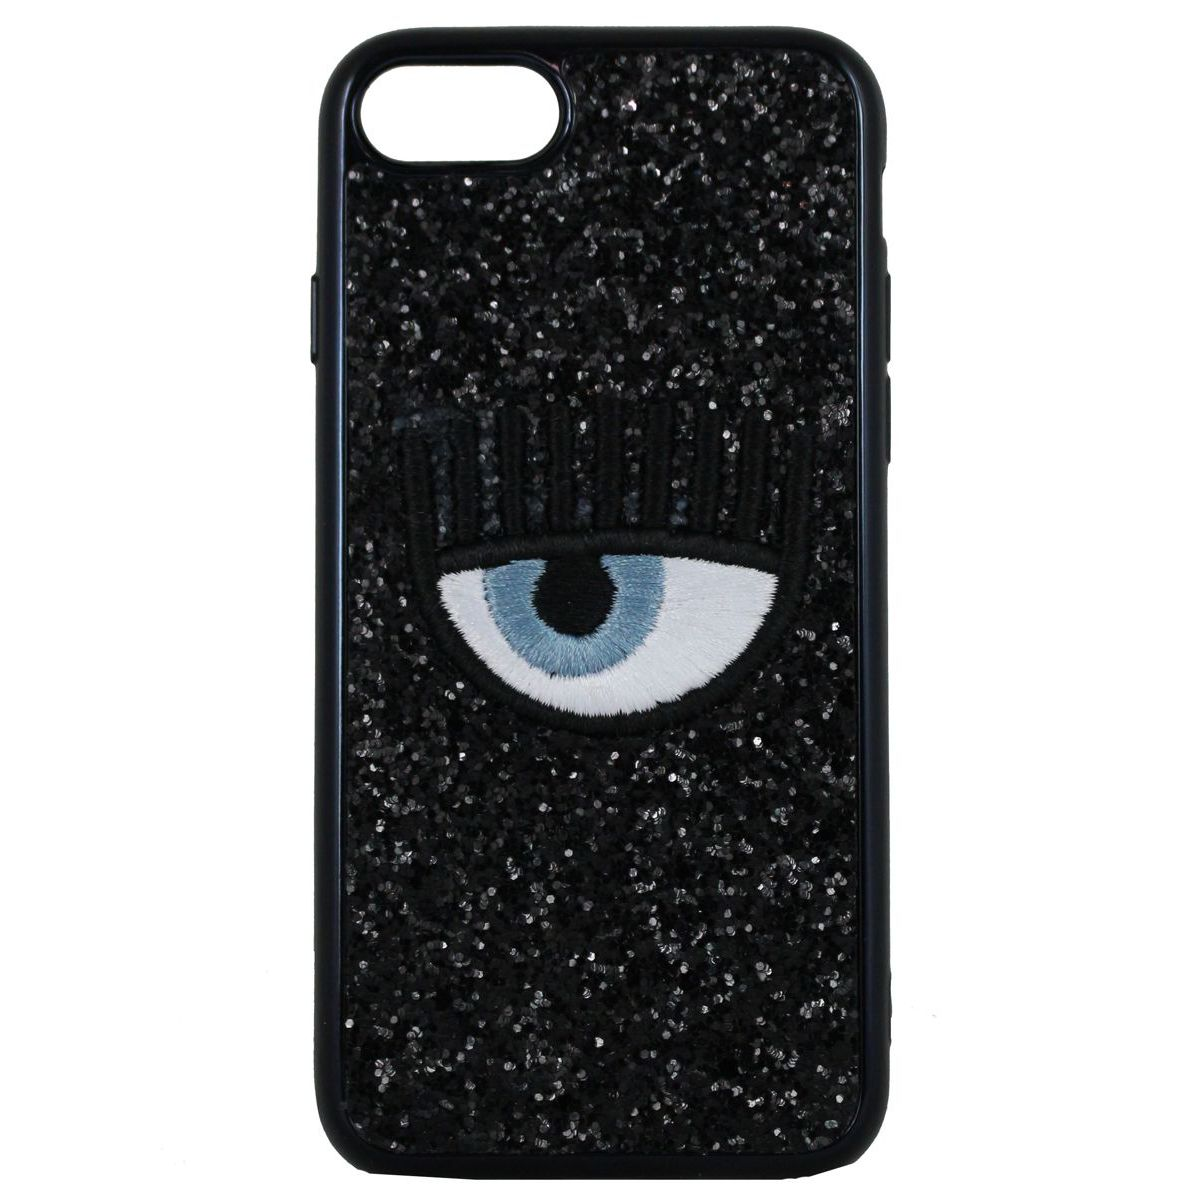 Cover logo Iphone 7/8 Nero CHIARA FERRAGNI